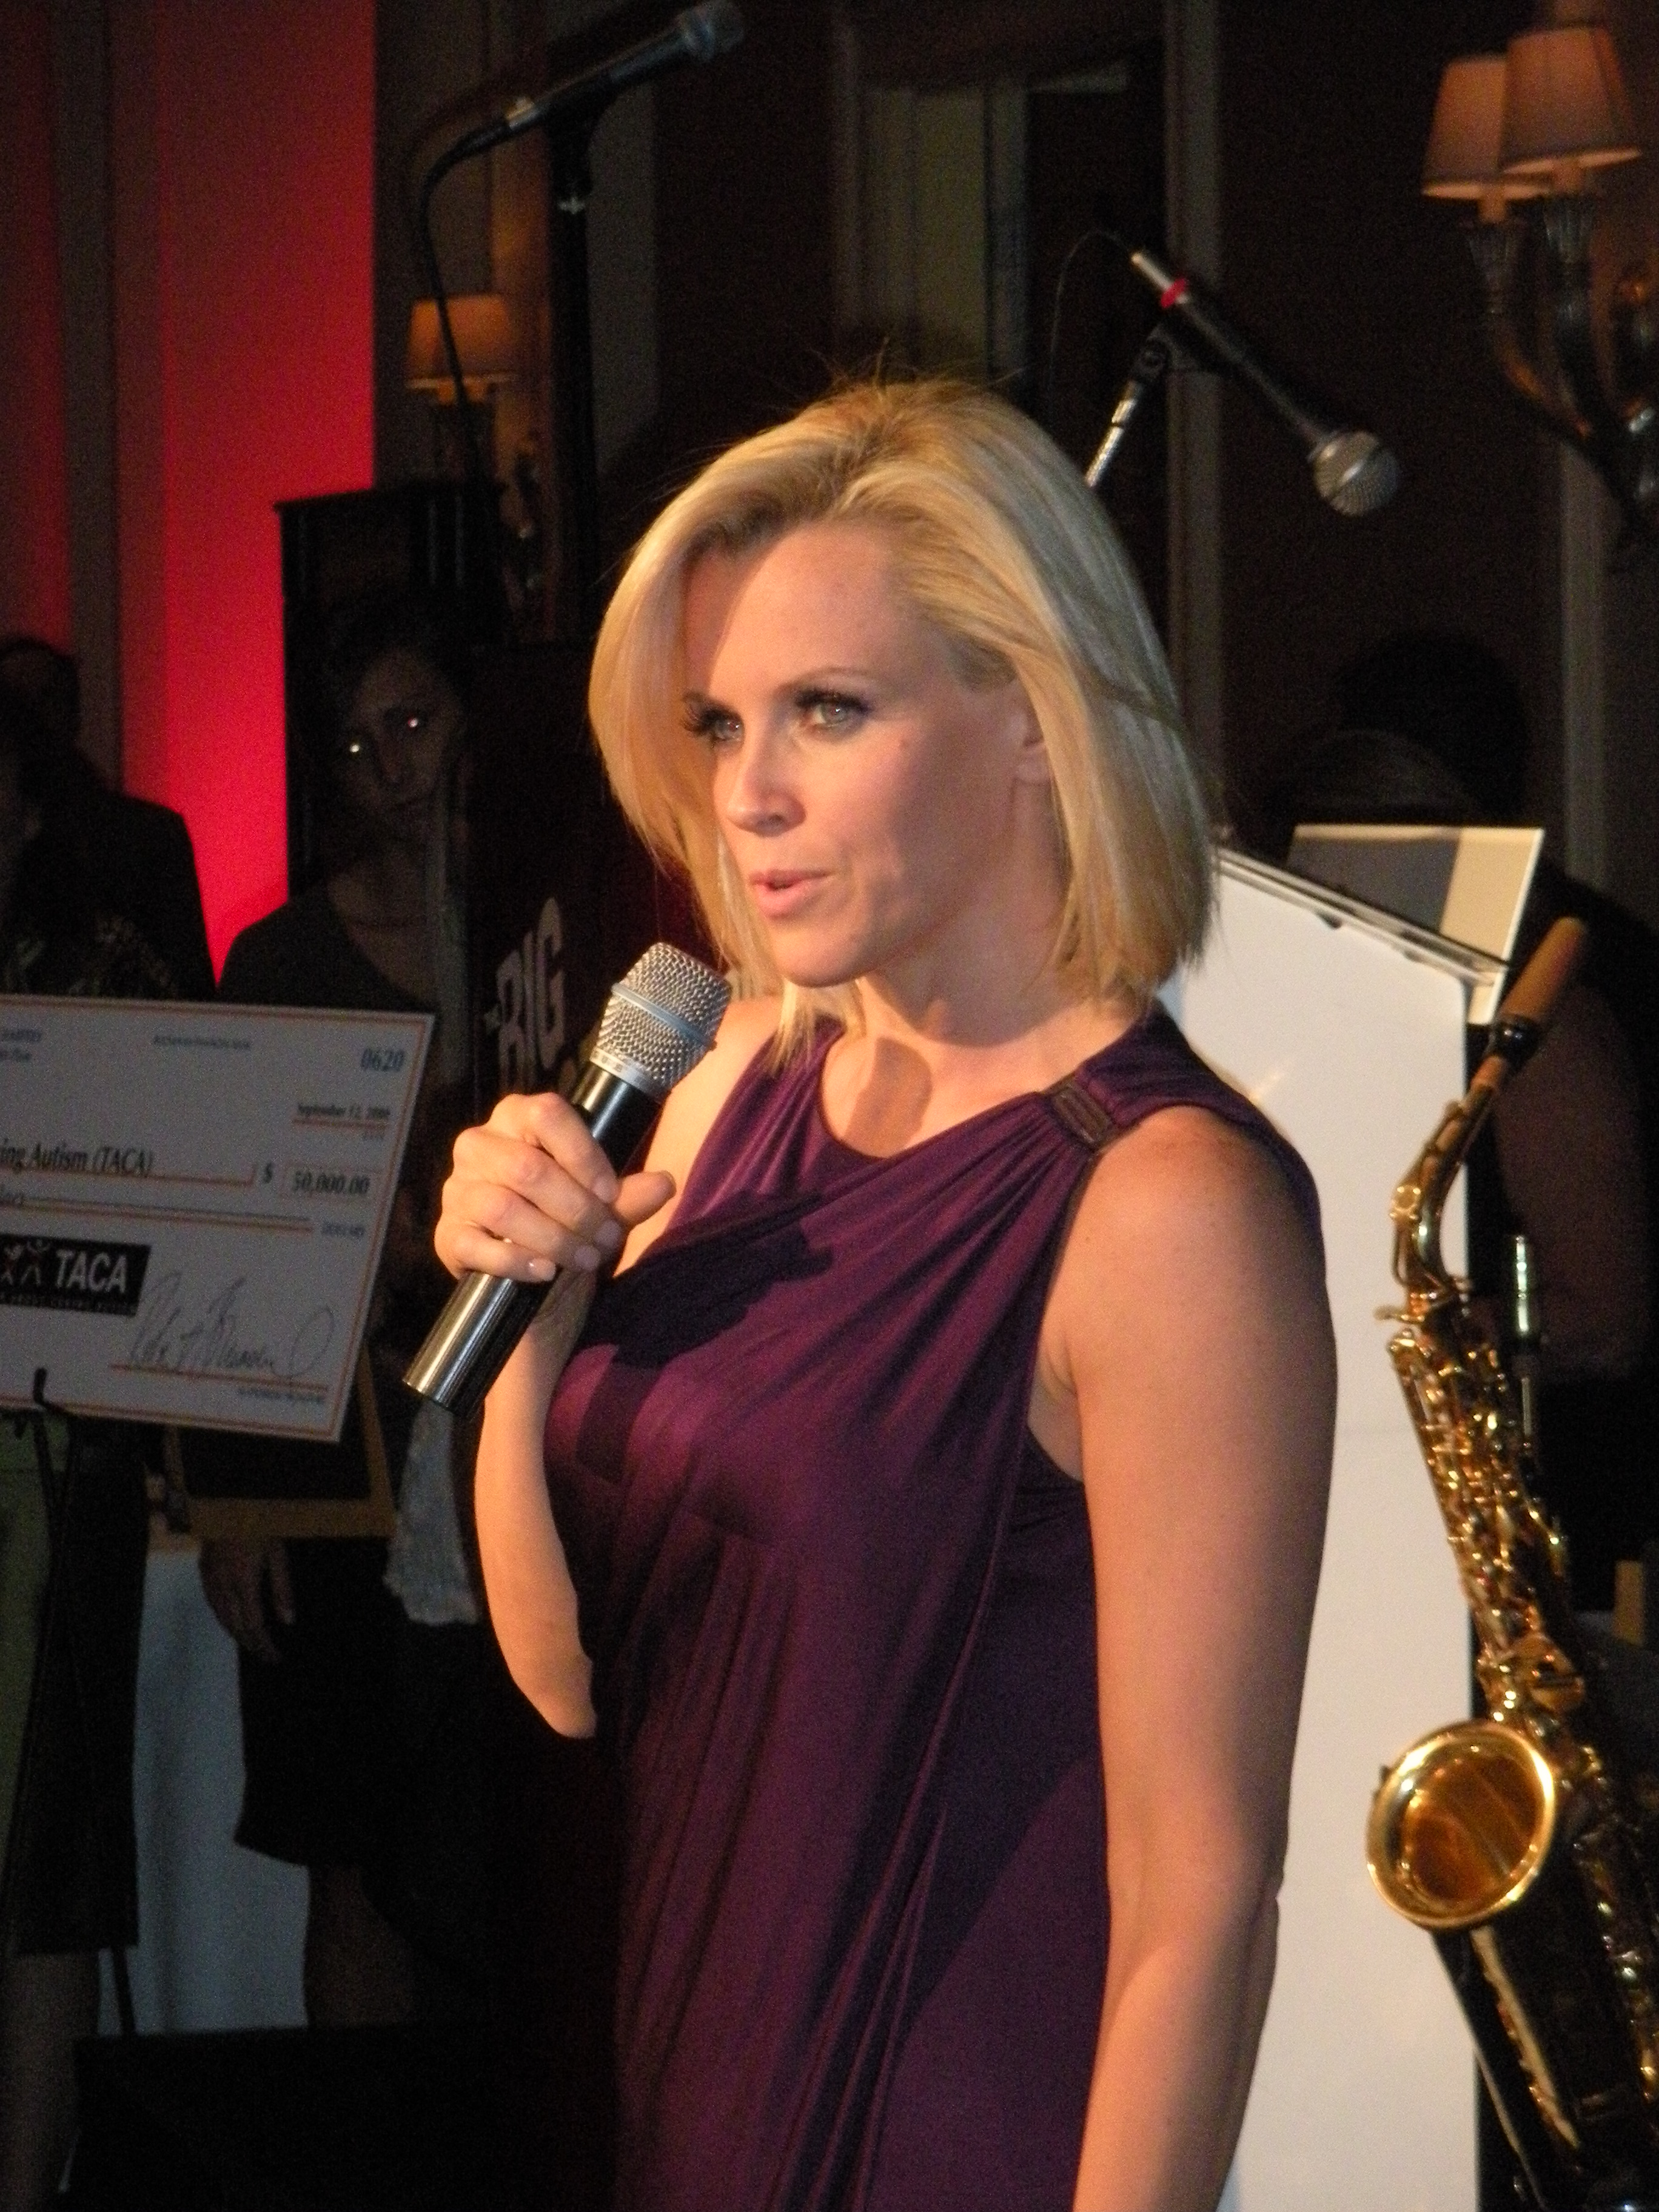 Toronto Public Health start public campaign opposing Jenny McCarthy's appointment ABC's The View